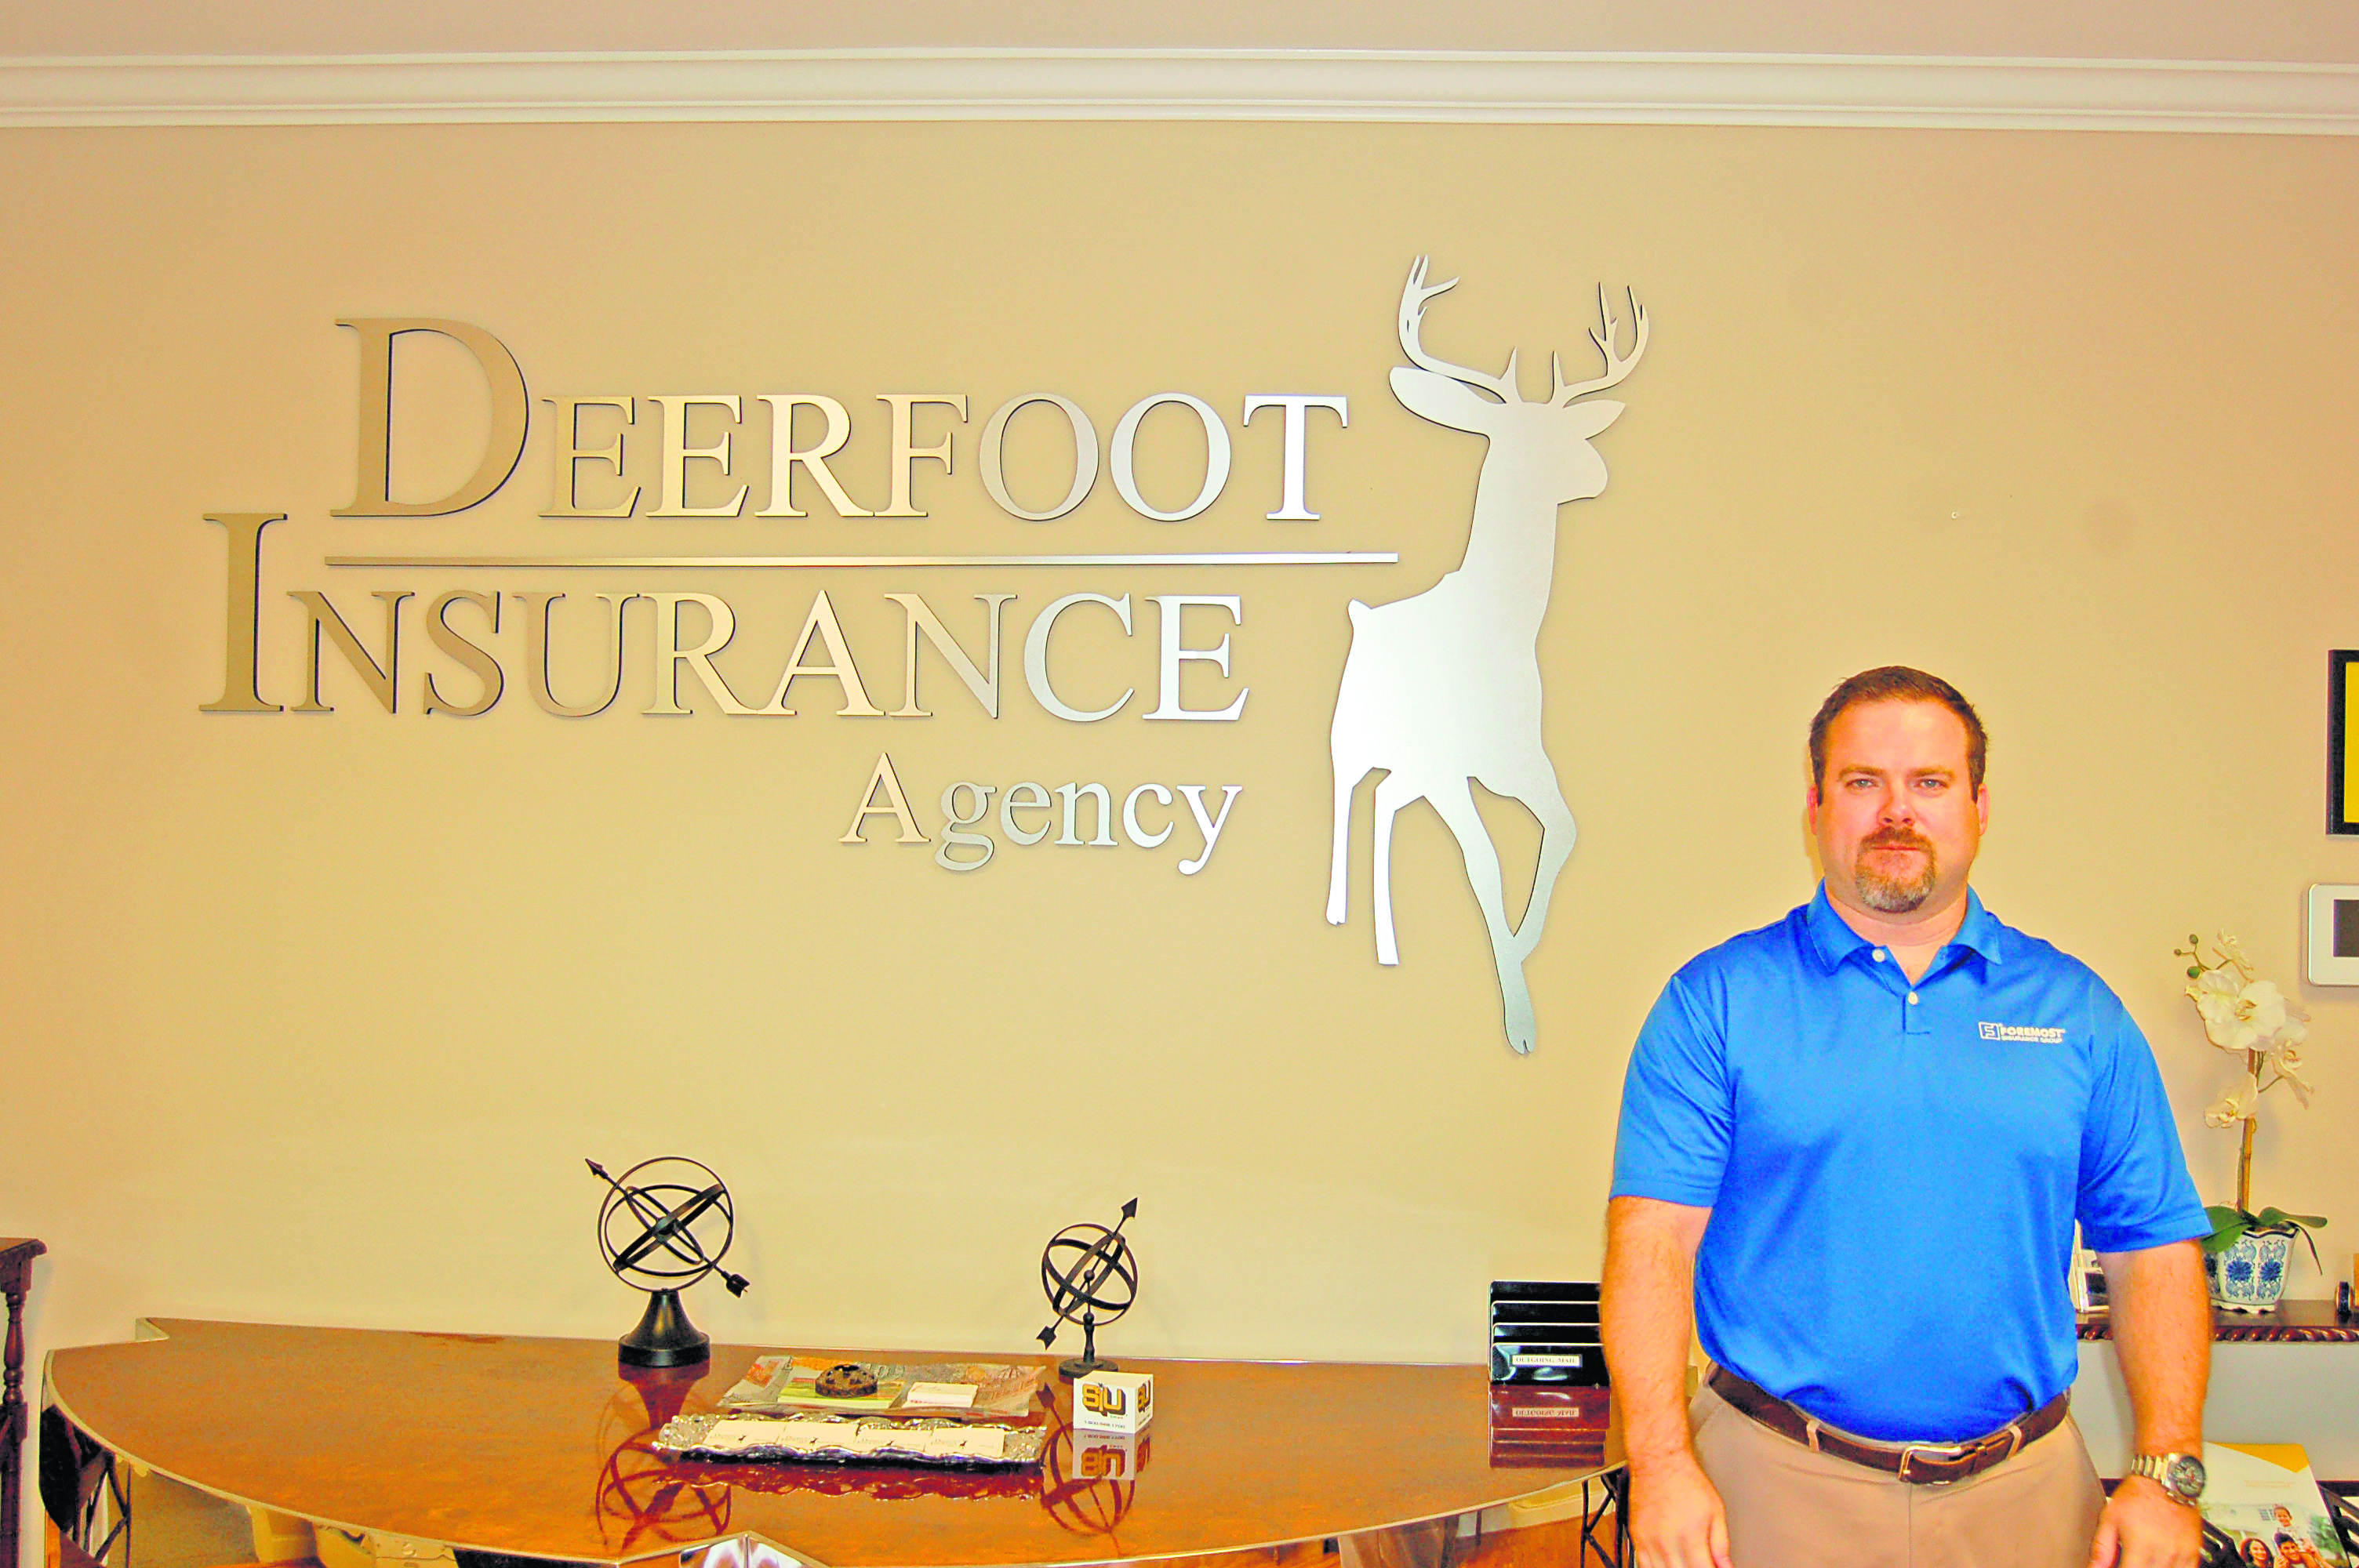 Deerfoot Insurance provides help for home, auto owners with local focus